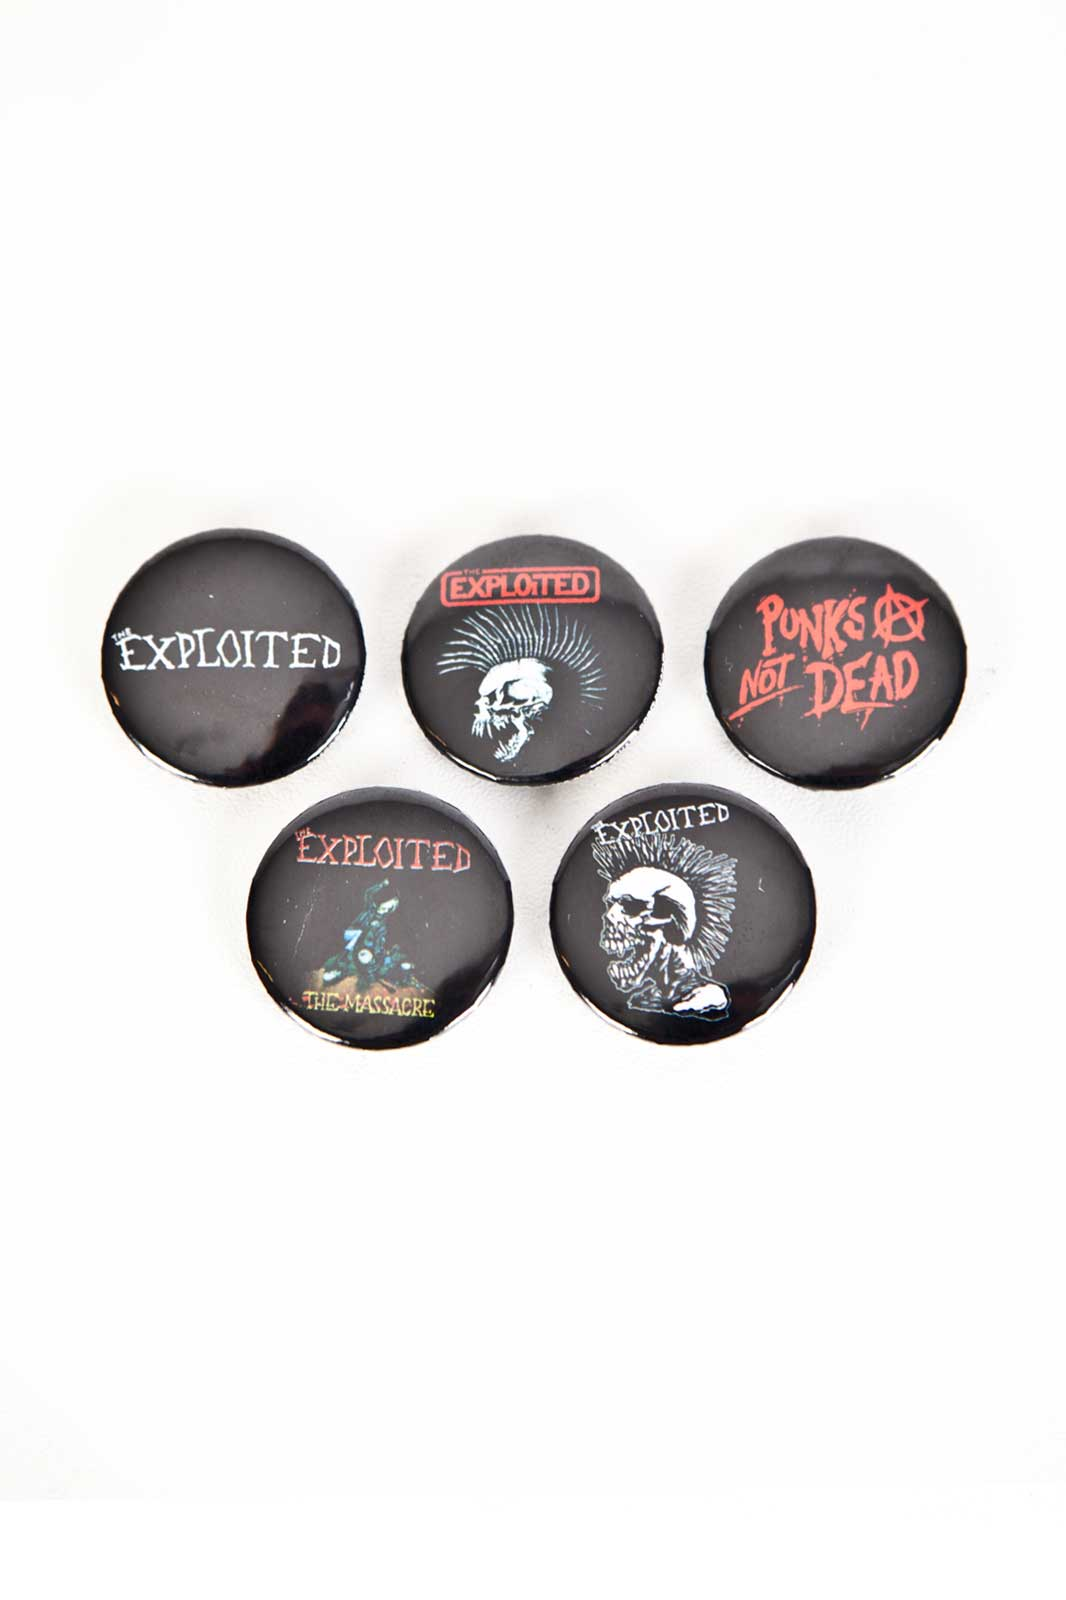 The Exploited Badge